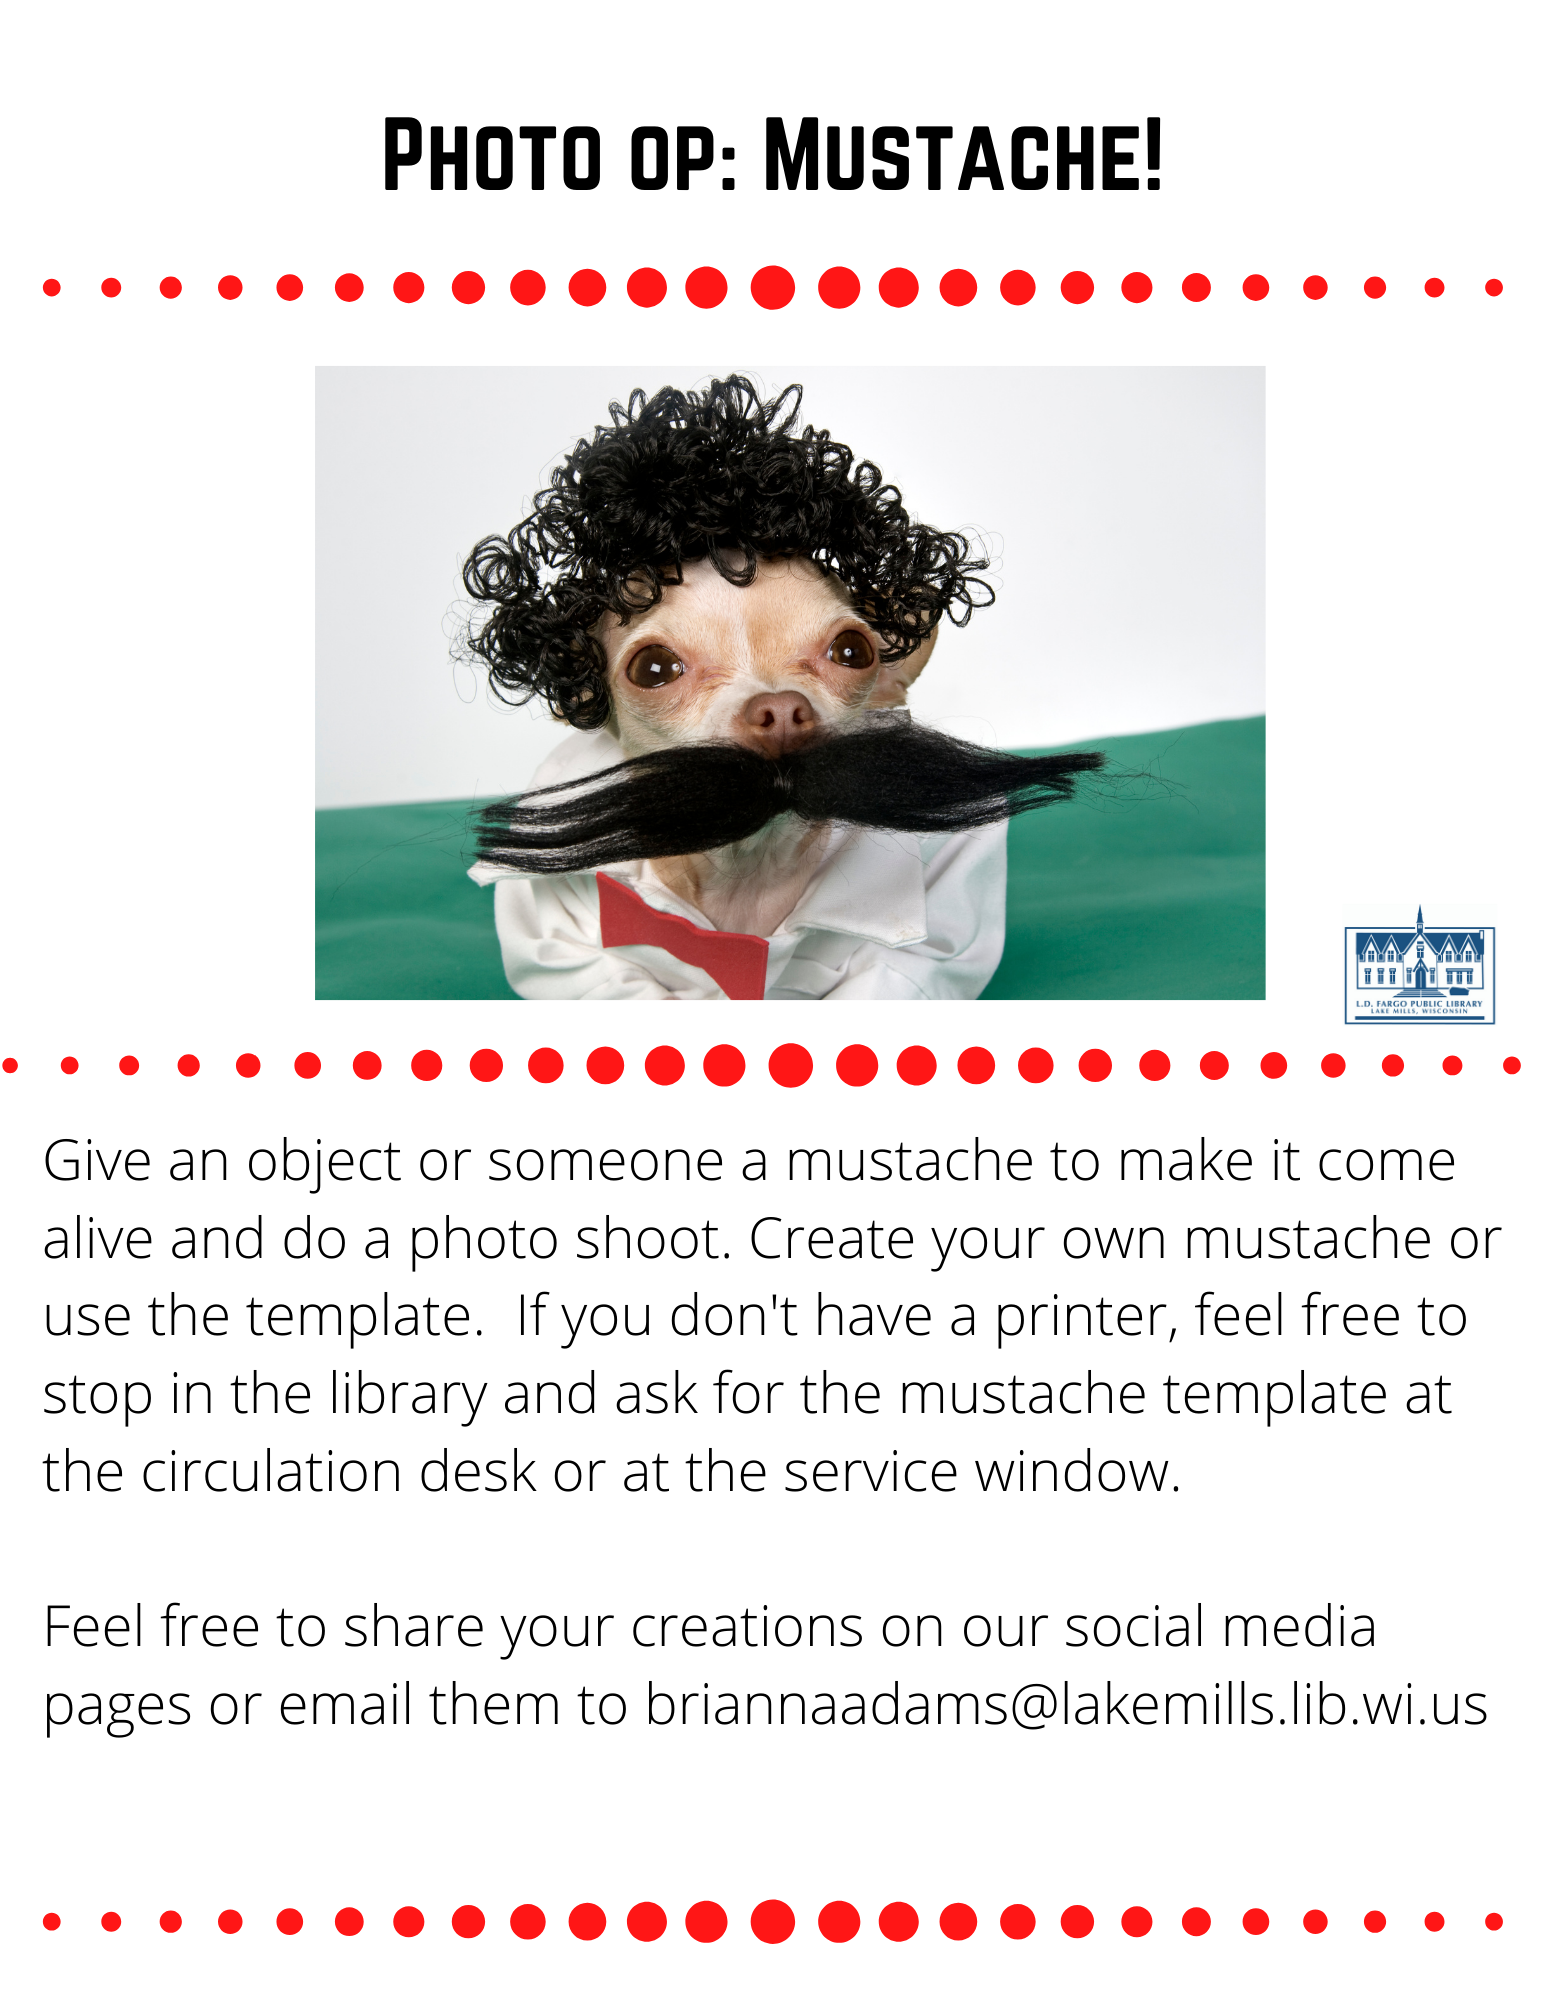 Photo op: Mustache!  Give an object or someone a mustache to make it come alive and do a photo shoot. Create your own mustache or use the template.  If you don't have a printer, feel free to stop in the library and ask for the mustache template at the circulation desk or at the service window.  Feel free to share your creations on our social media pages or email them to briannaadams@lakemills.lib.wi.us